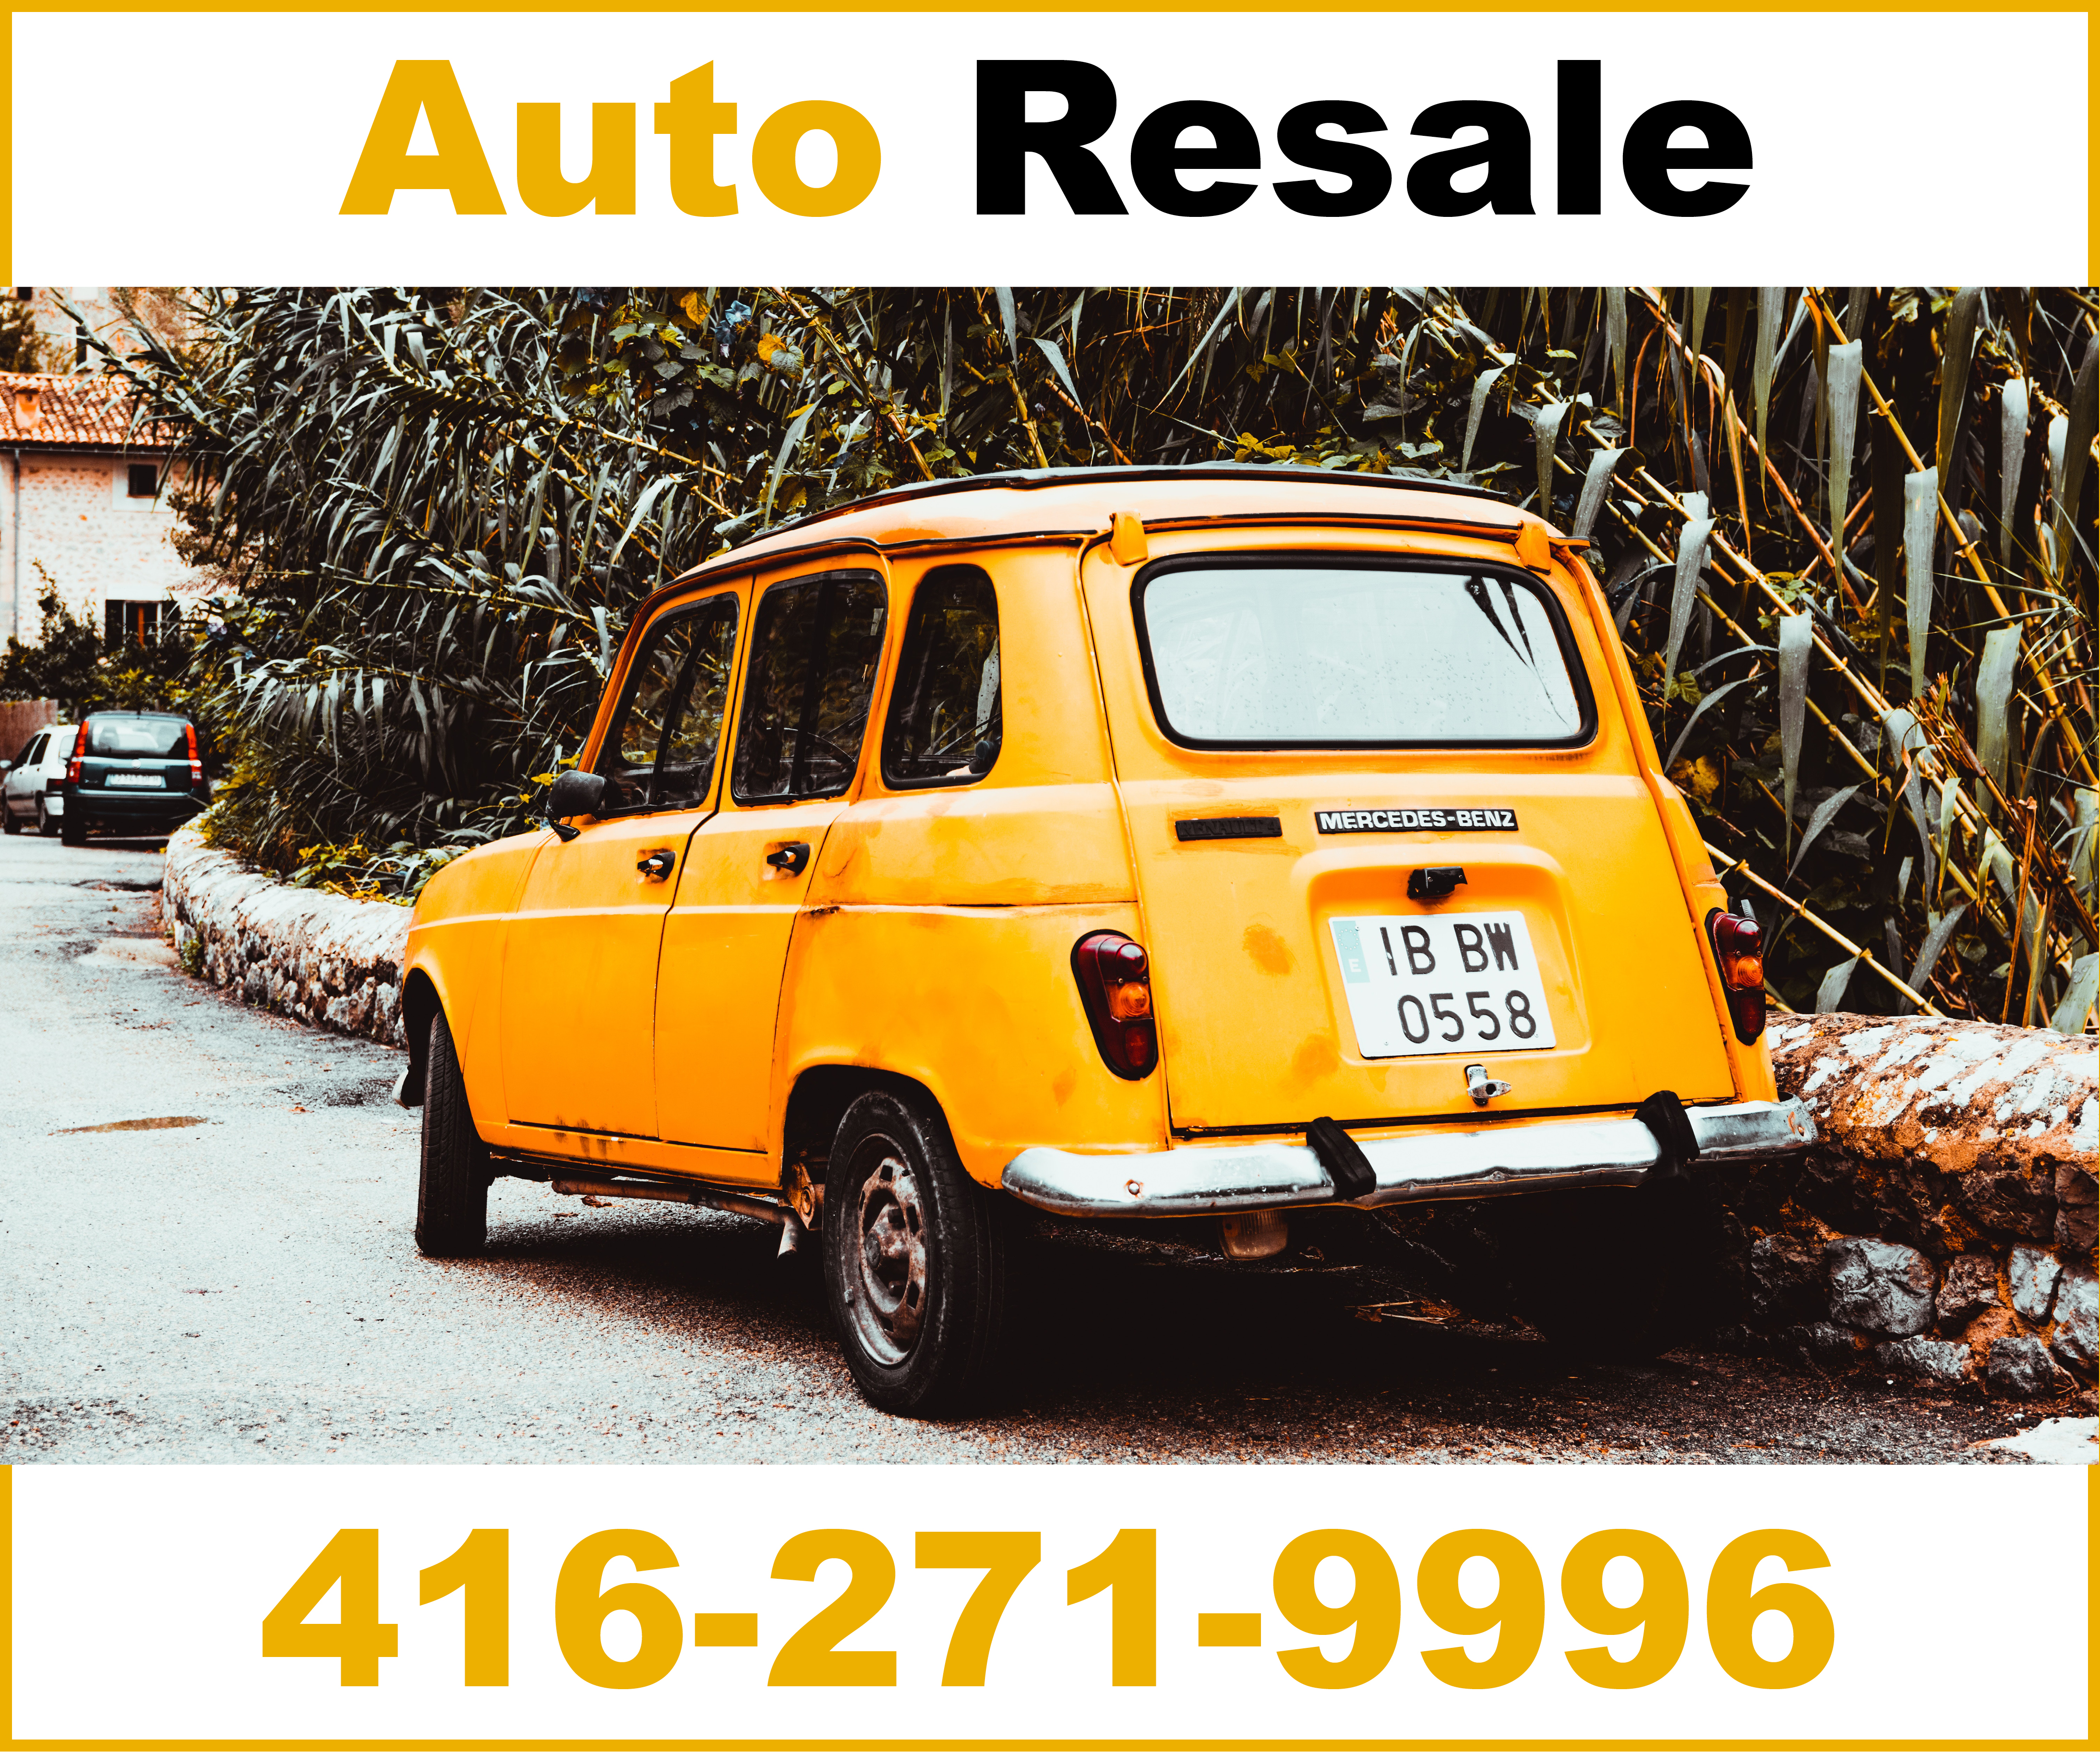 More from Auto Resale